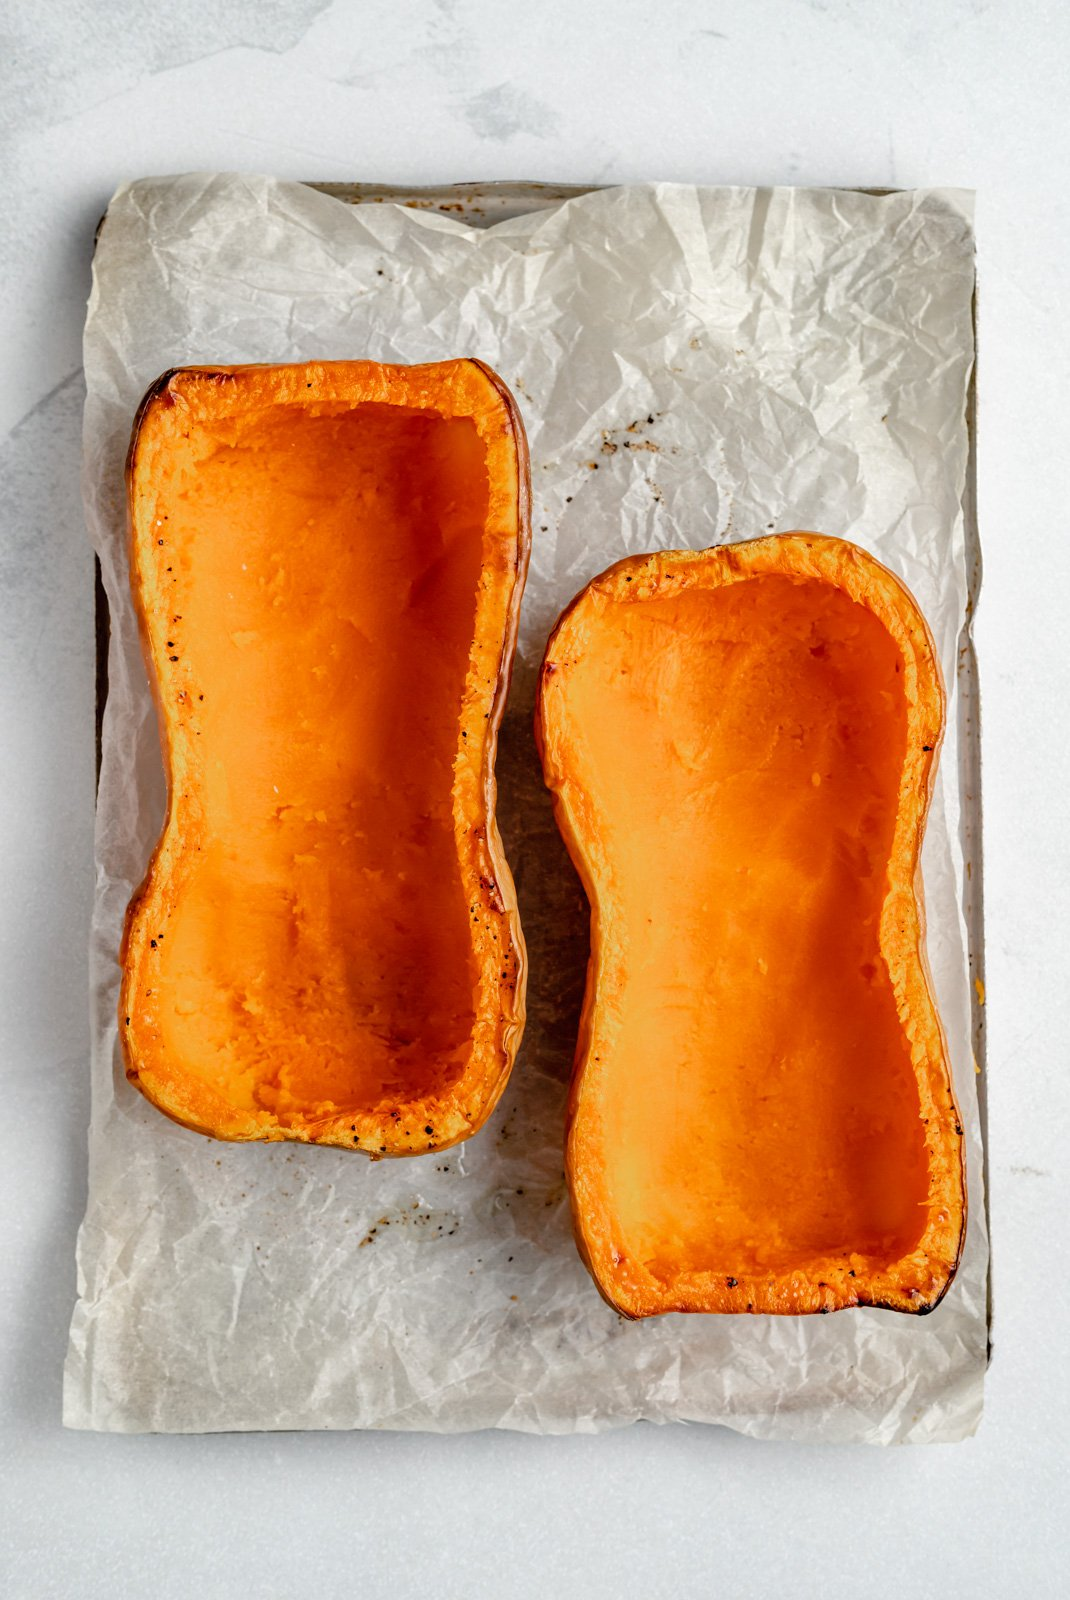 unbaked butternut squash on a baking tray